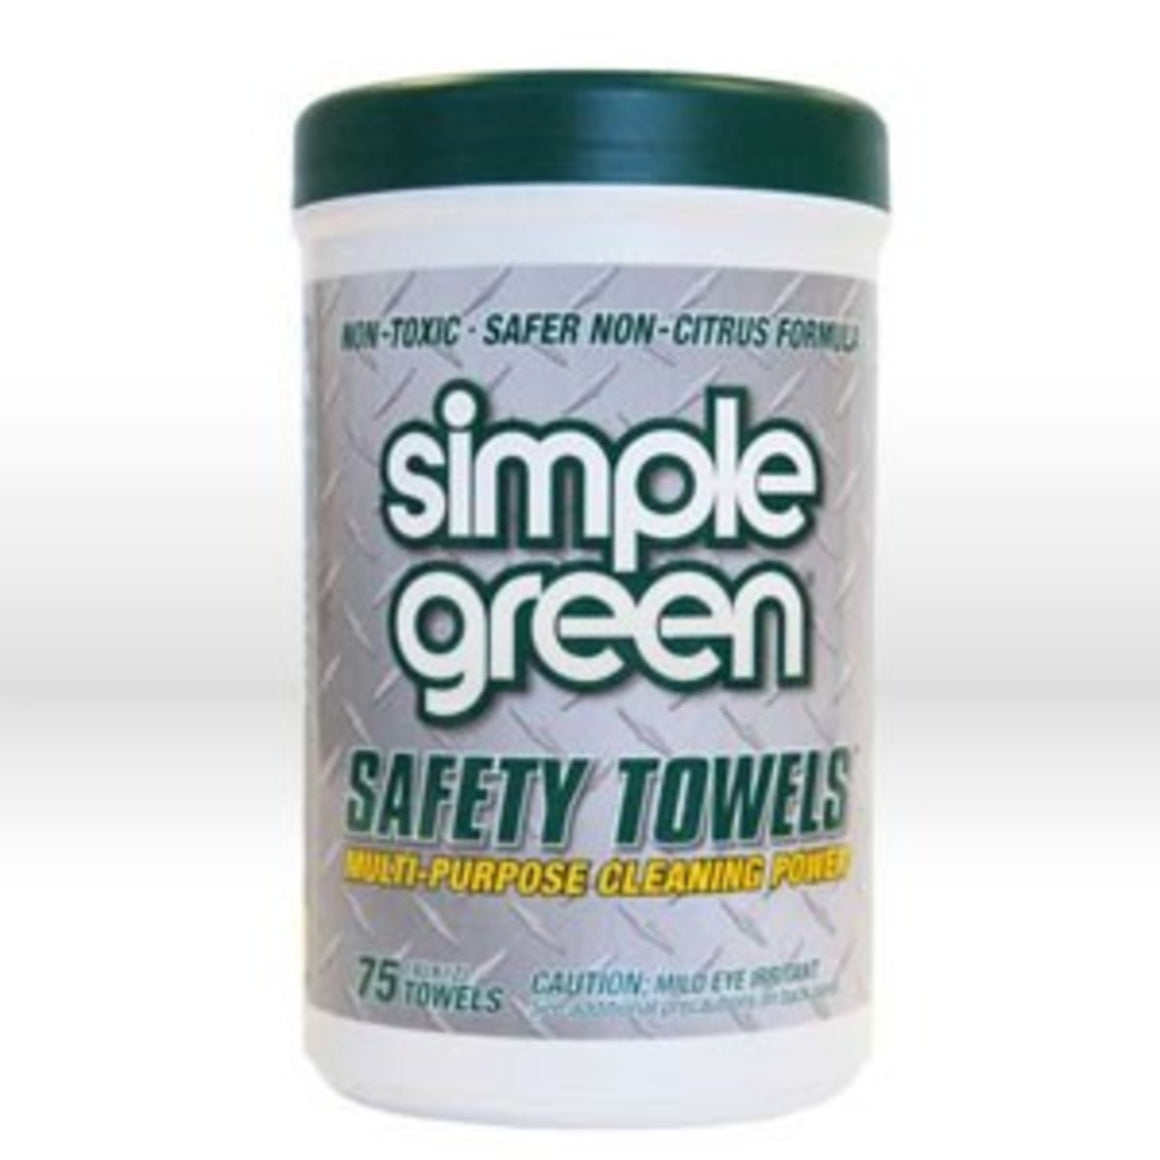 Simple Green Towels Hand Cleaning Wipes,Multi-Purpose Cleaner Towels,75 Count Canister